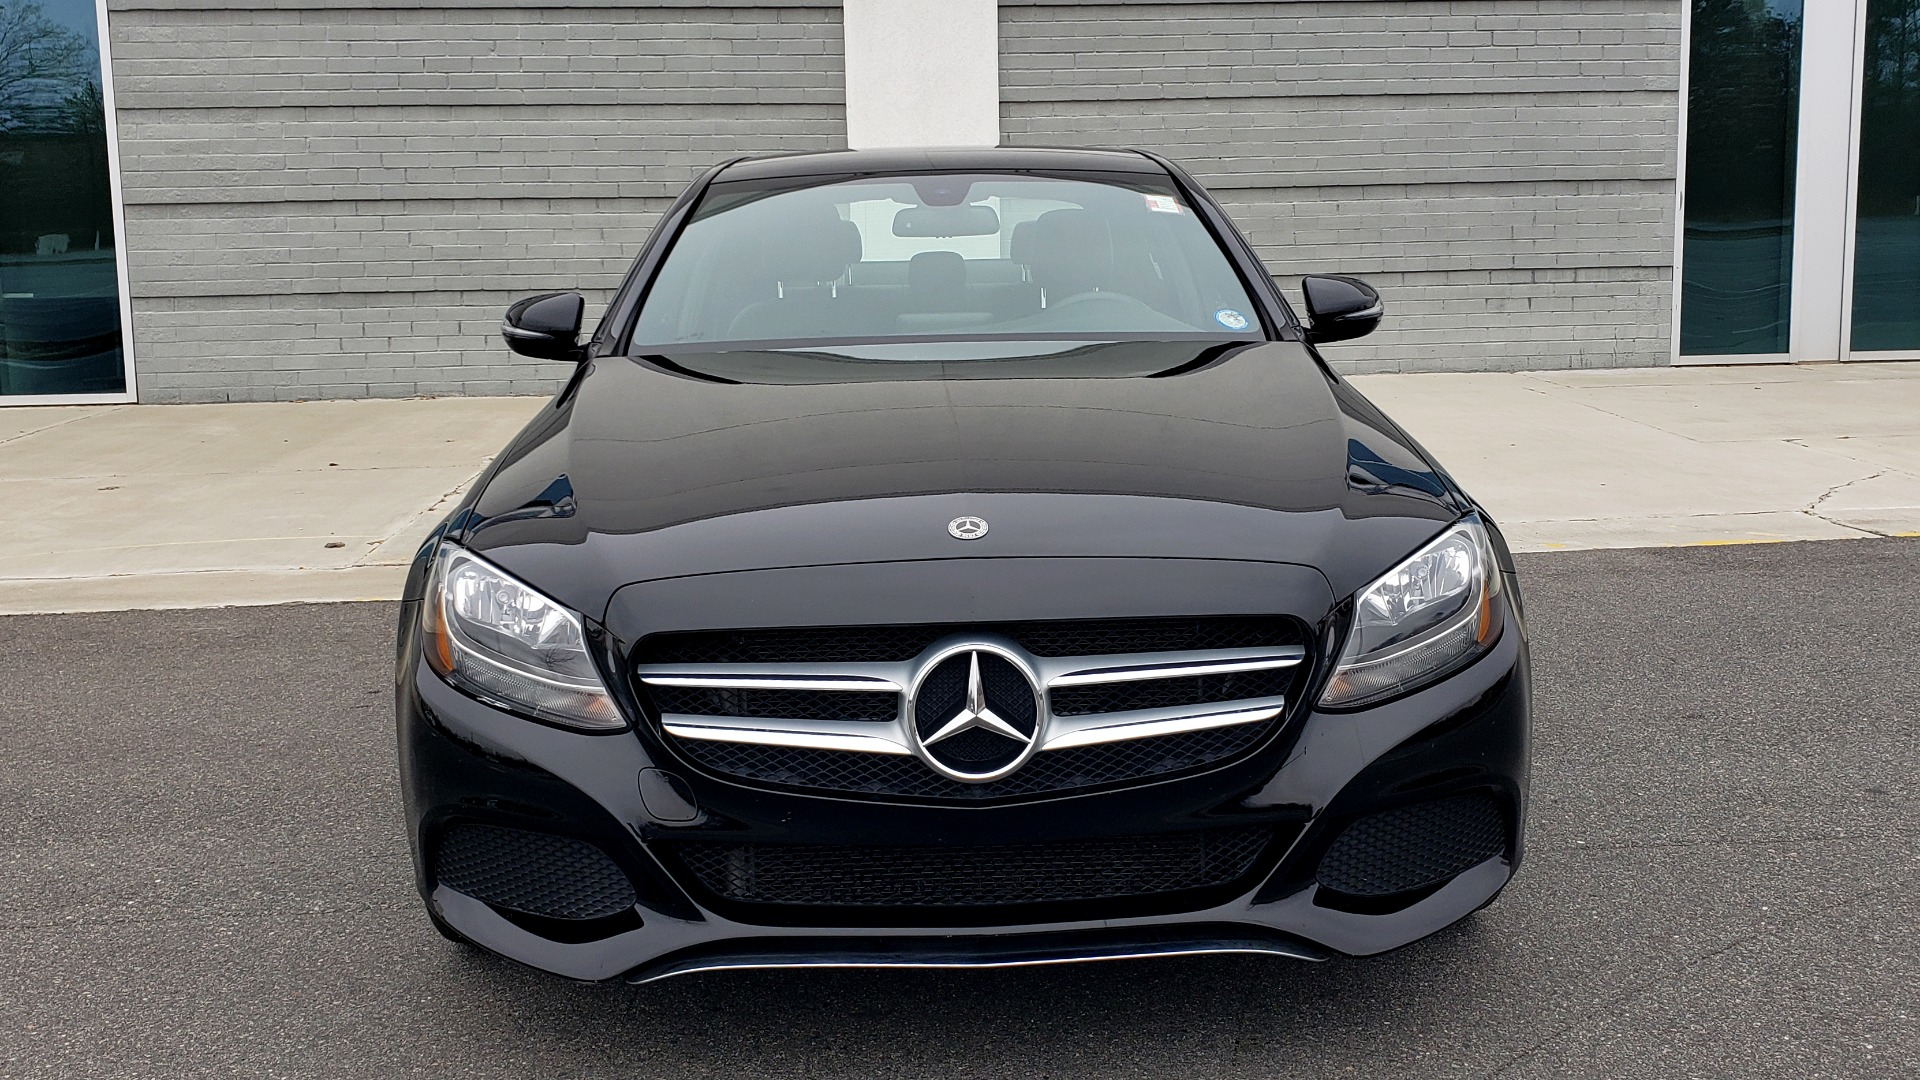 Used 2018 Mercedes-Benz C-CLASS C 300 PREMIUM / 2.0L TURBO / PANO-ROOF / KEYLESS-GO / REARVIEW for sale Sold at Formula Imports in Charlotte NC 28227 76